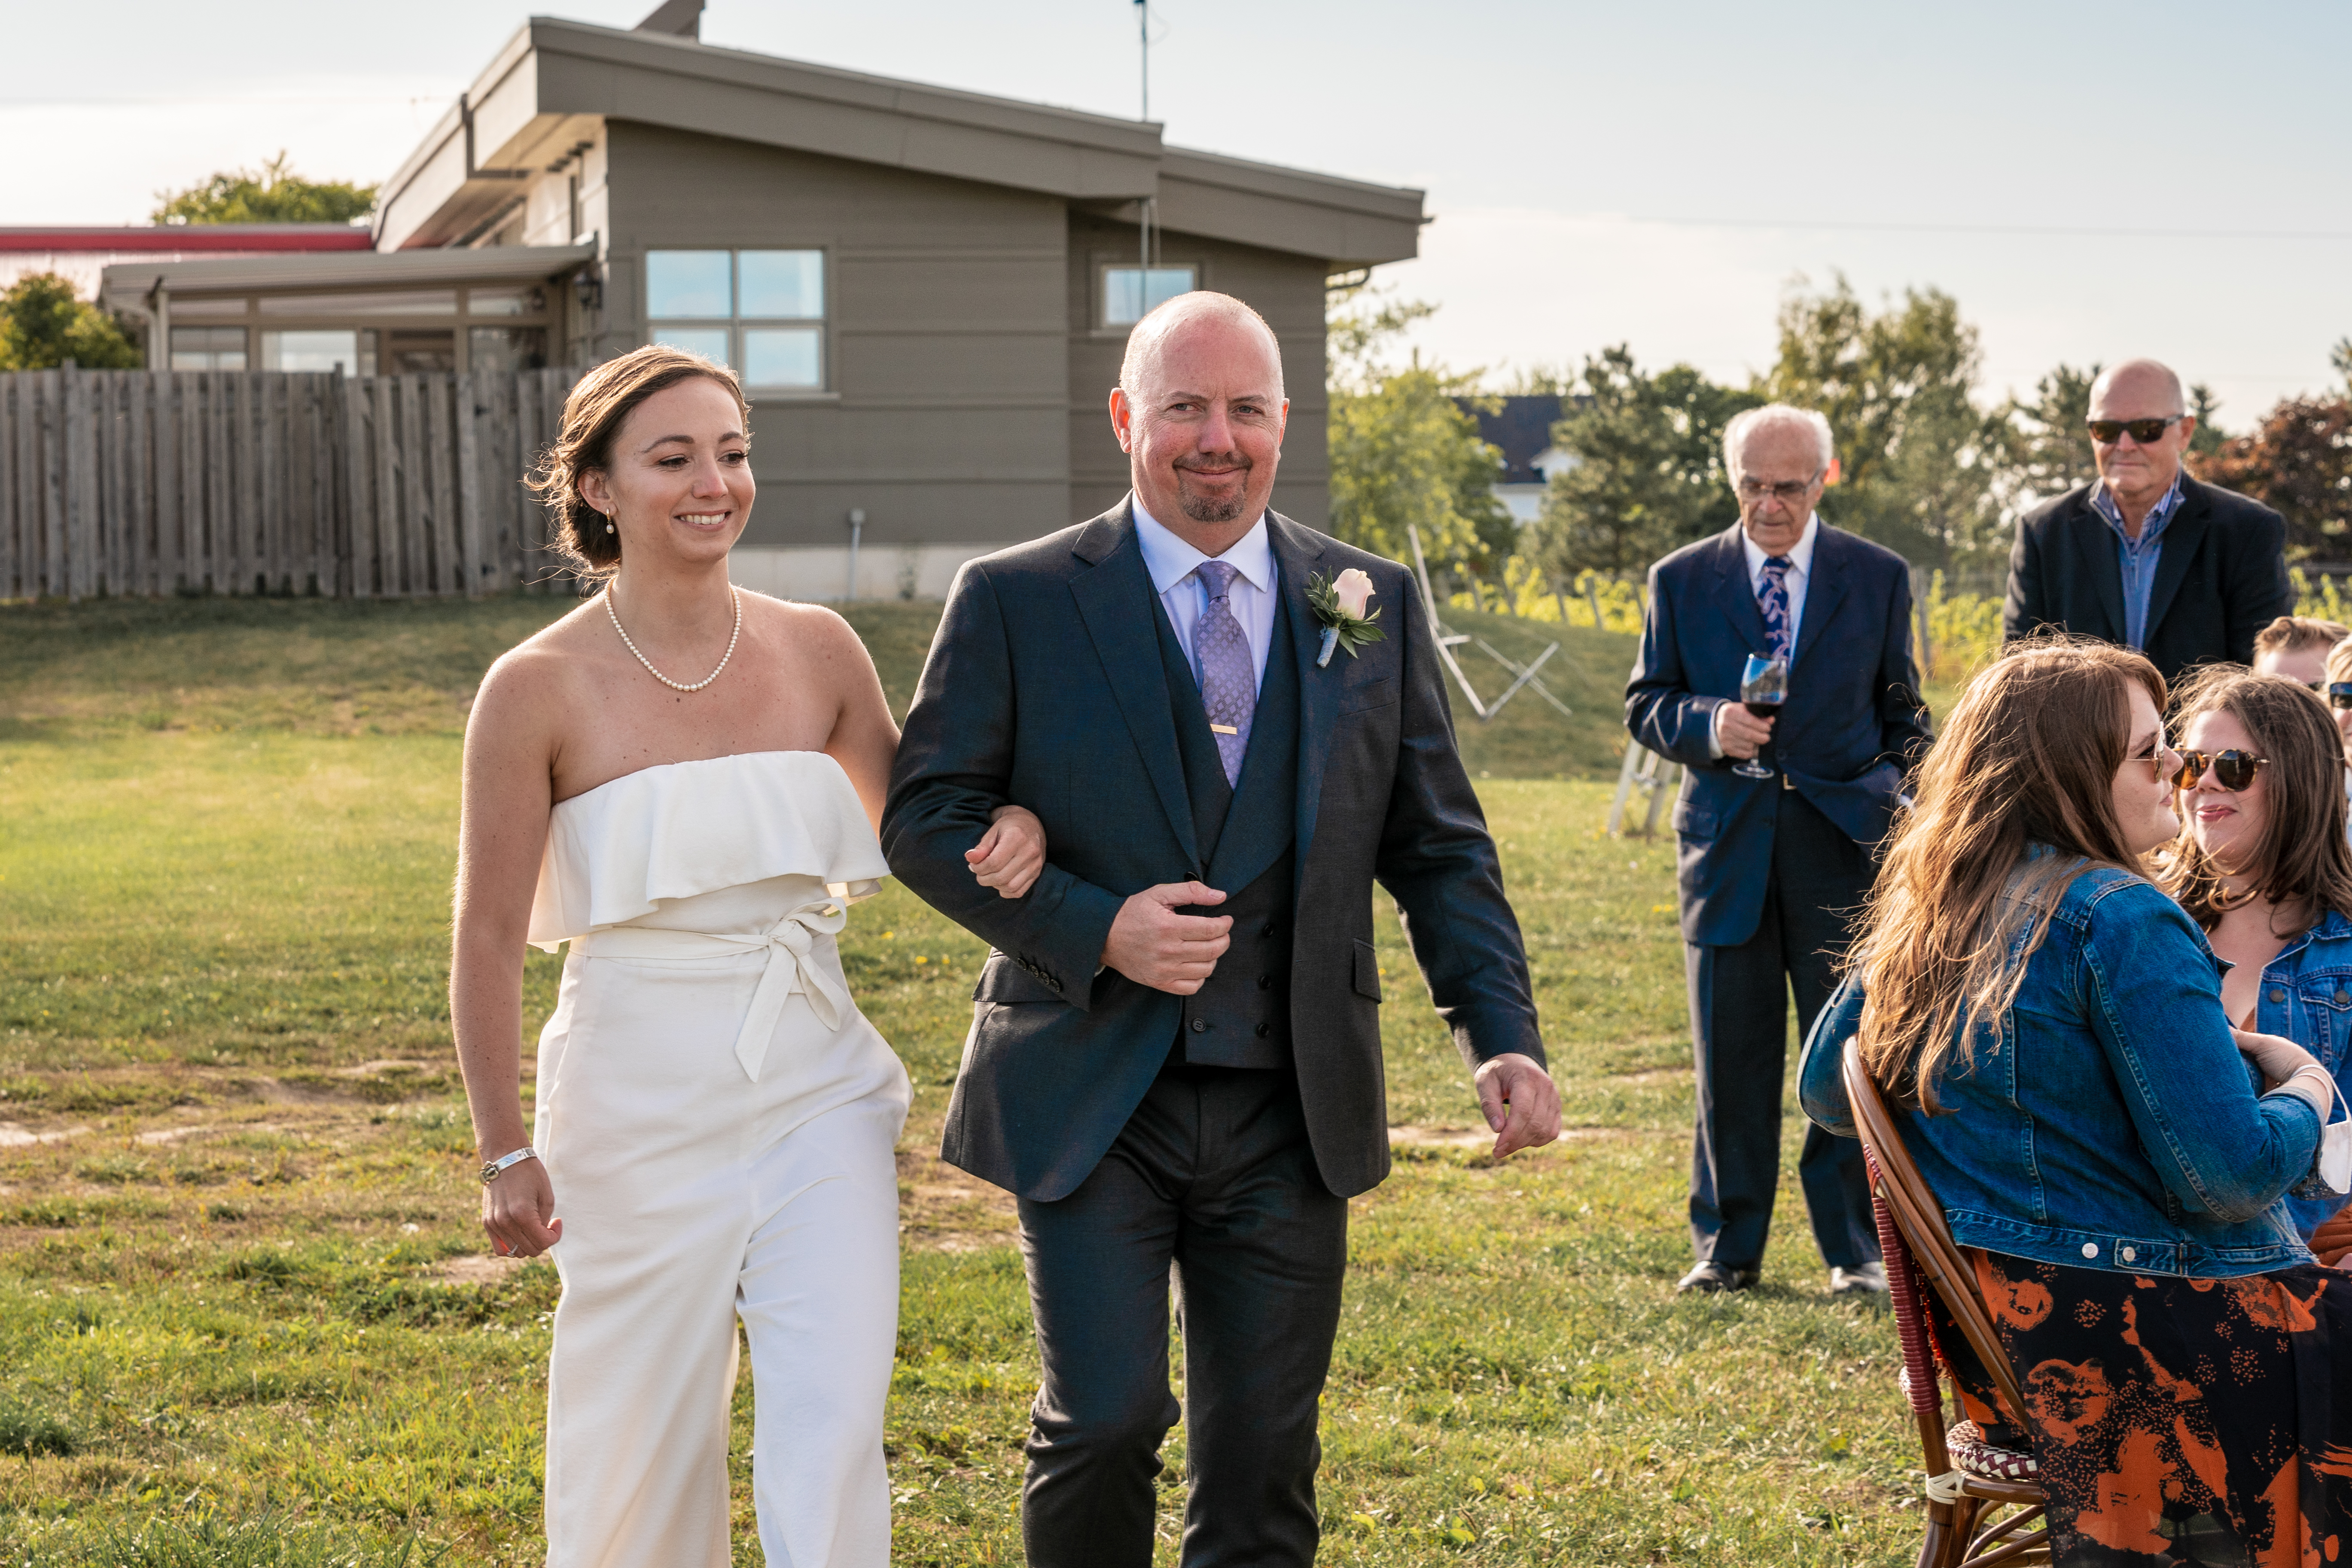 Bride and her dad walk down aisle